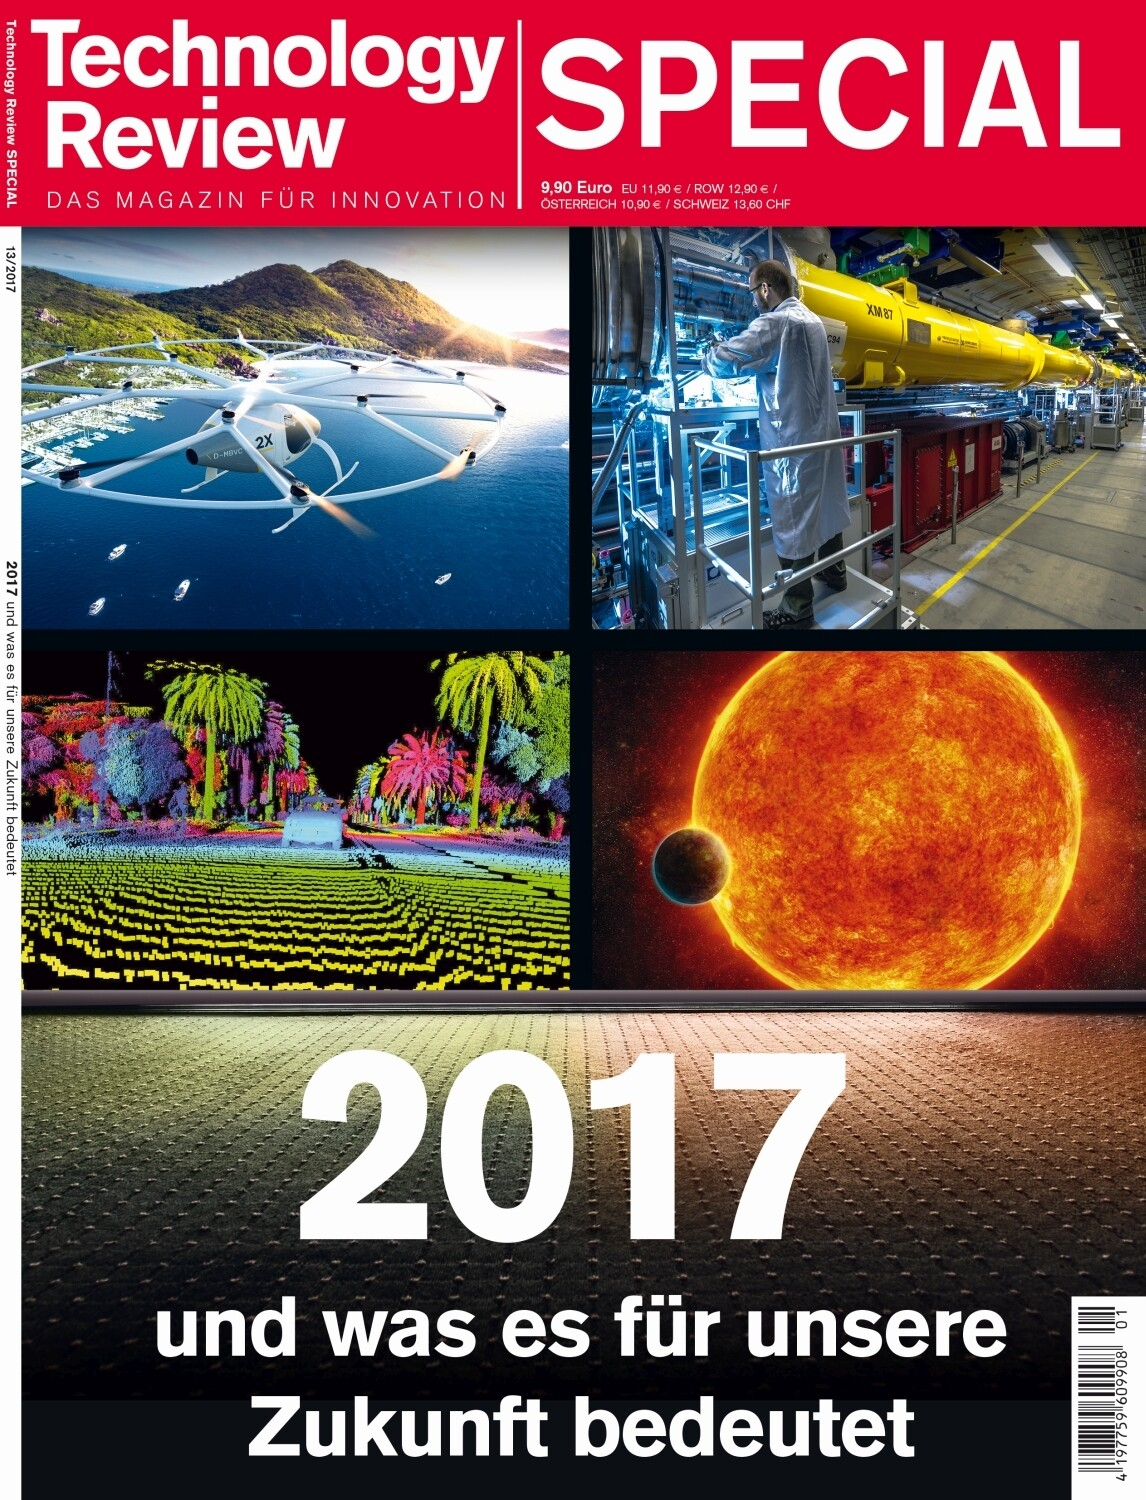 Technology Review 13/2017 SPECIAL